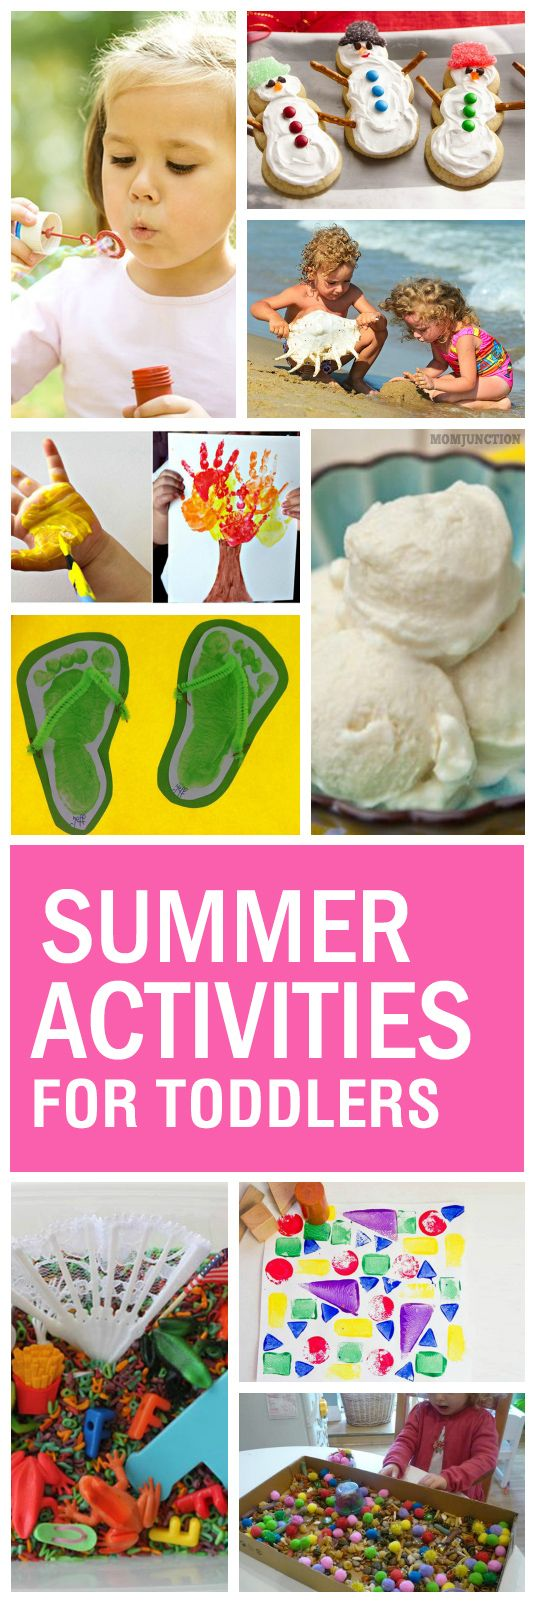 Summer Activities For Toddlers: Your sweet baby is now a terrific toddler, who does not like to sit still for more than ten seconds! Research indicates that spending time with toddlers helps with better cognitive development for them. Let's look at 10 interesting summer activities for #toddlers